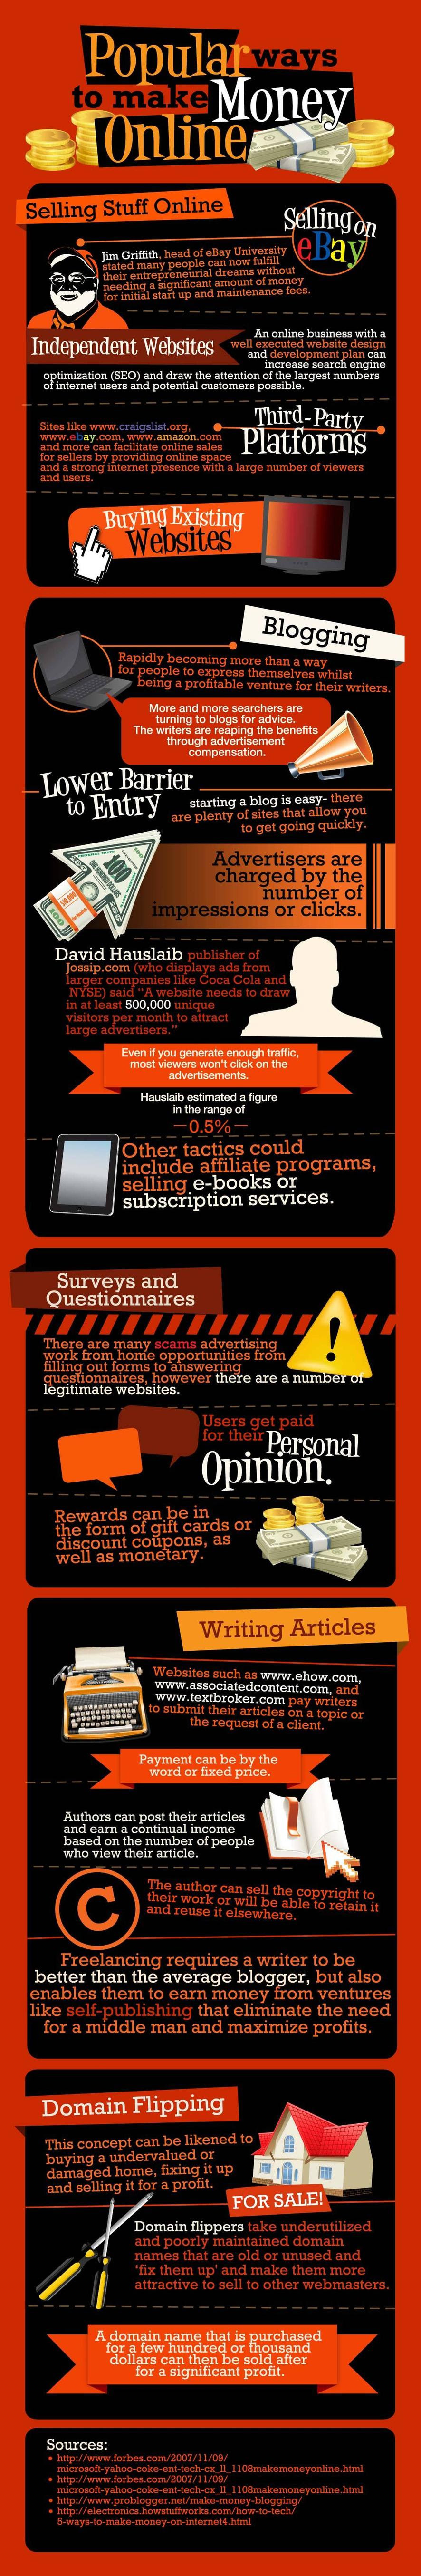 how To make money Online - #infographic